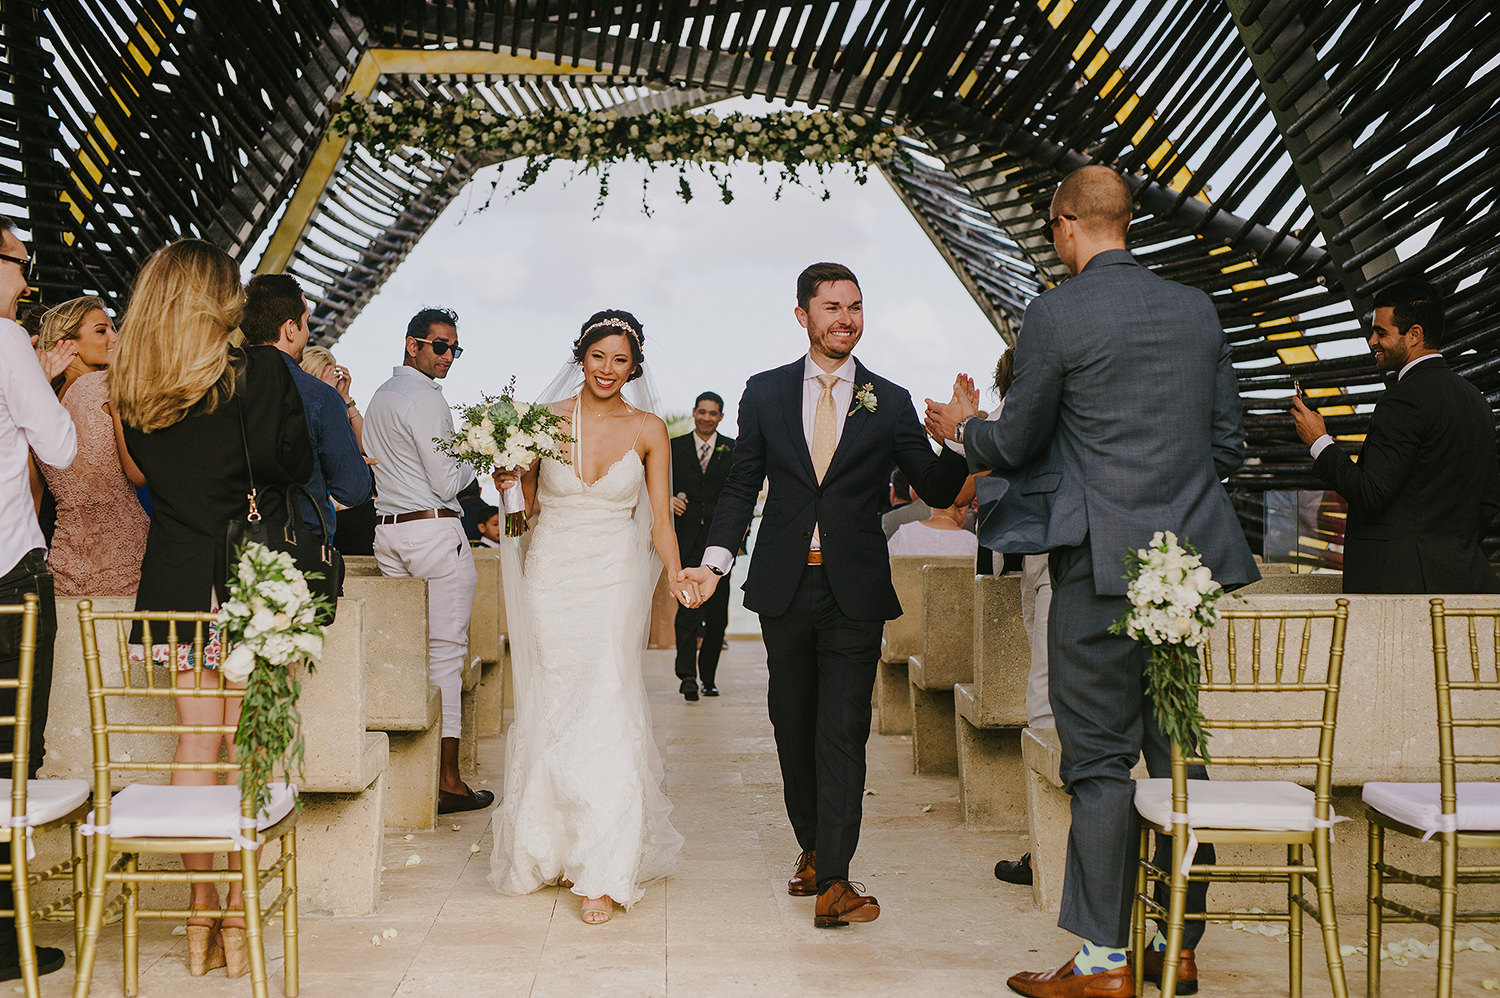 CherylReed_Wedding_Kape_Photography_WeddingPhotography_Mexico_Boda_Fotografia_Royalton_Hideway_Cancun_RivieraMaya_PlayadelCarmen_Beach_324FB_BLOG.jpg